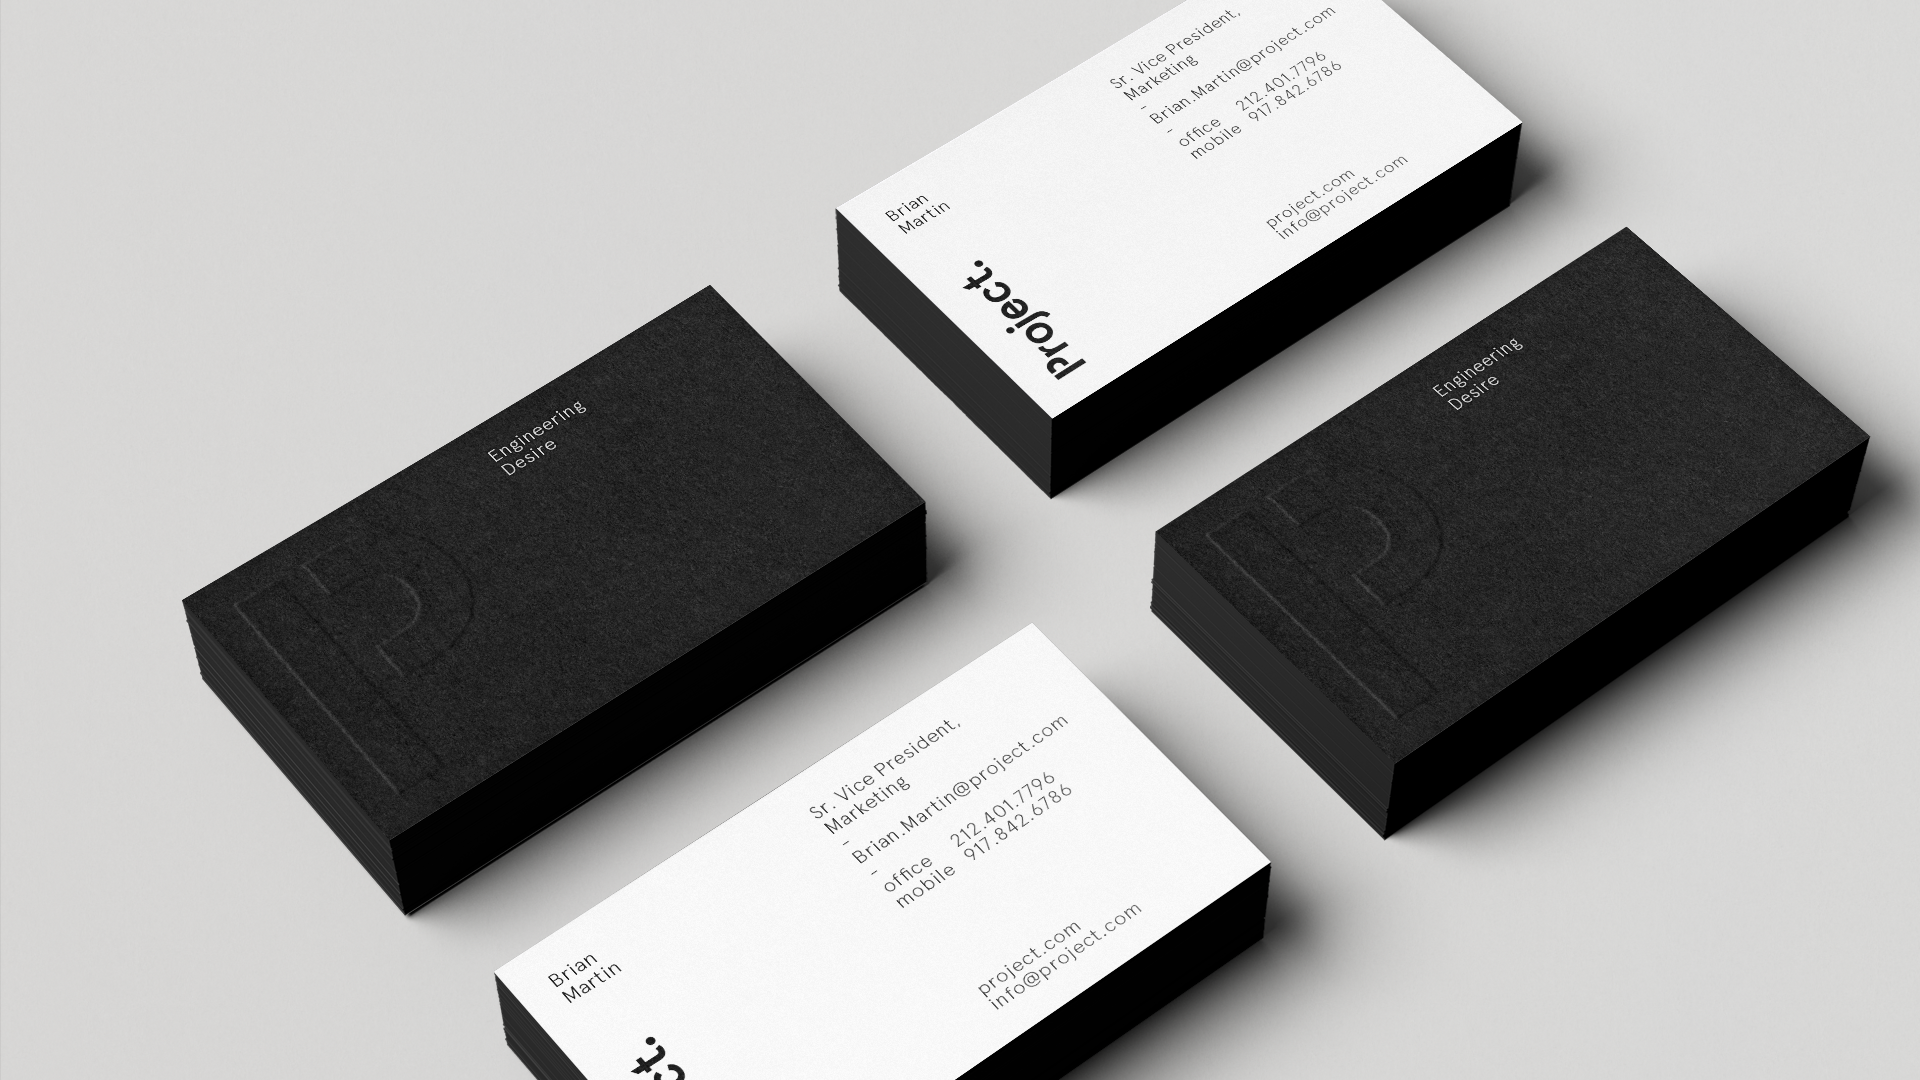 Project Dia Strategy Branding Design Motion Business Cards Layout Branding Design Name Card Design